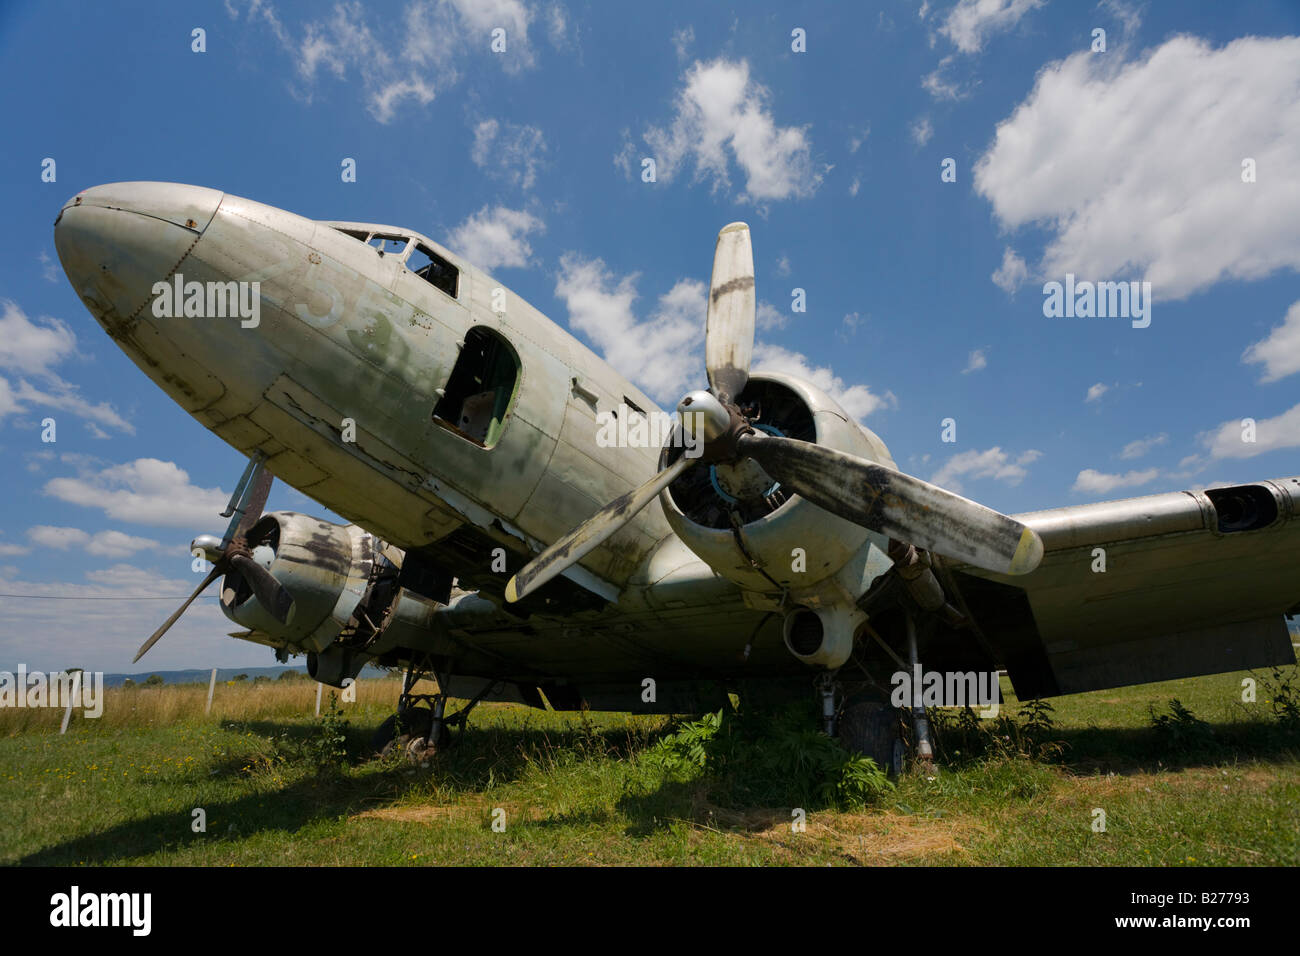 Derelict aircraft, C-47 Skytrain piston-engined propeller driven classic transport of ex JRV in Otocac, Croatia - Stock Image